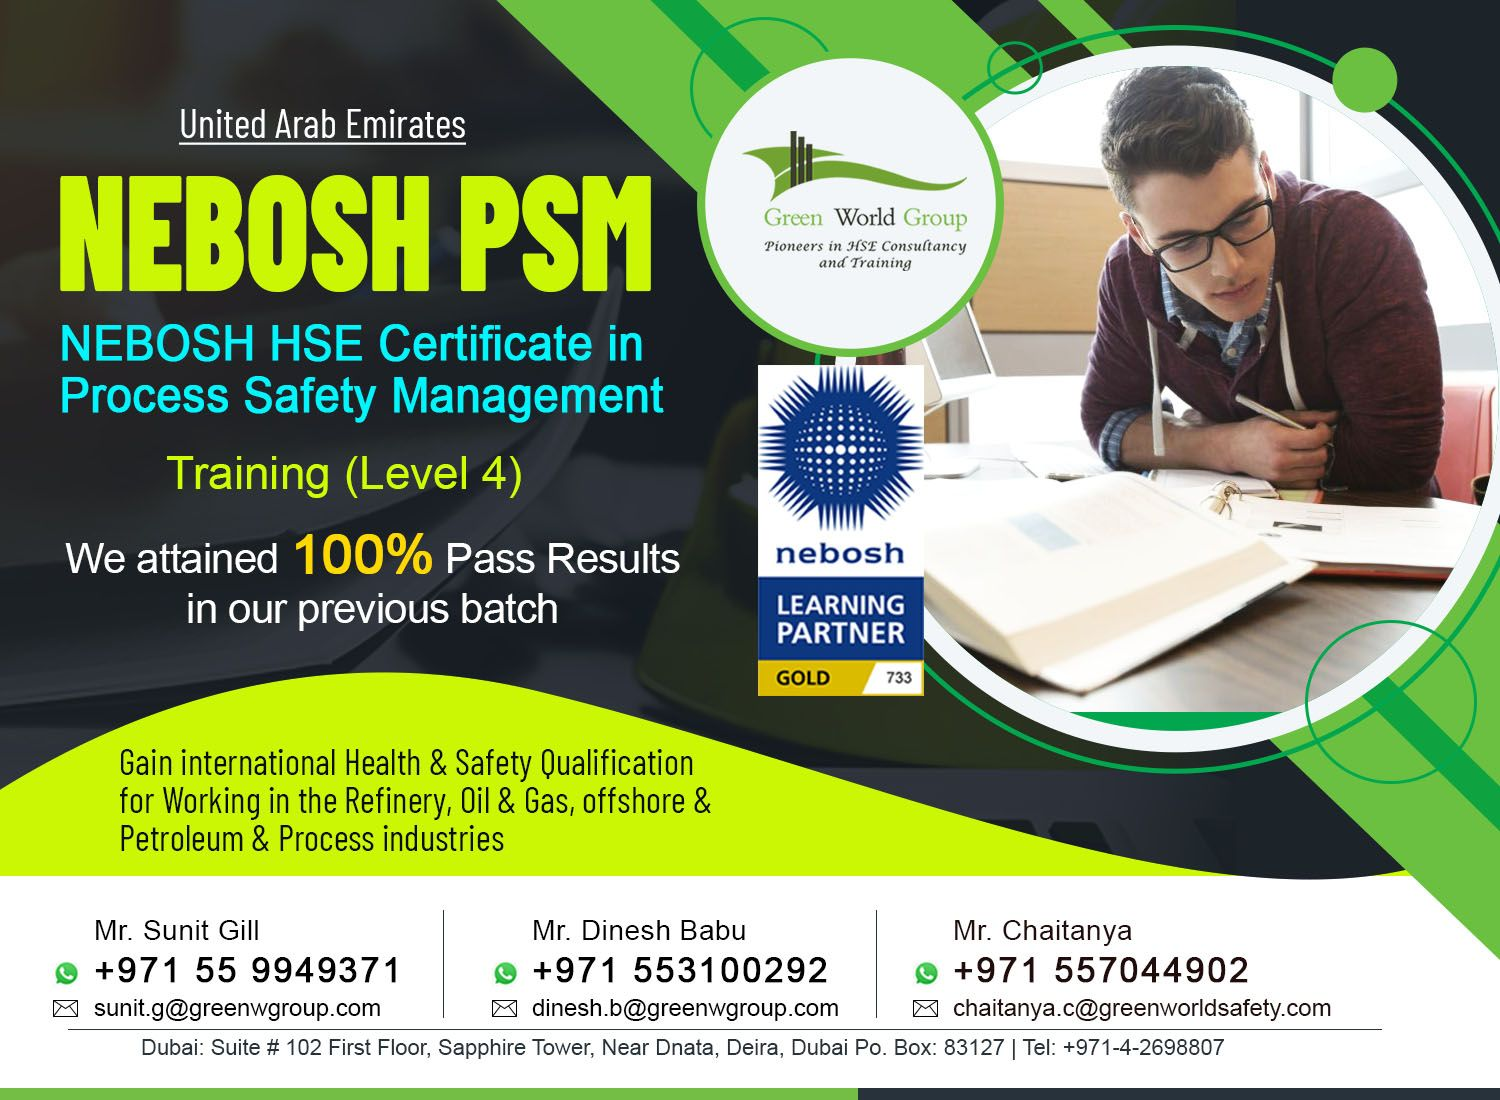 Choosing NEBOSH PSM in UAE is good for Safety Career? in